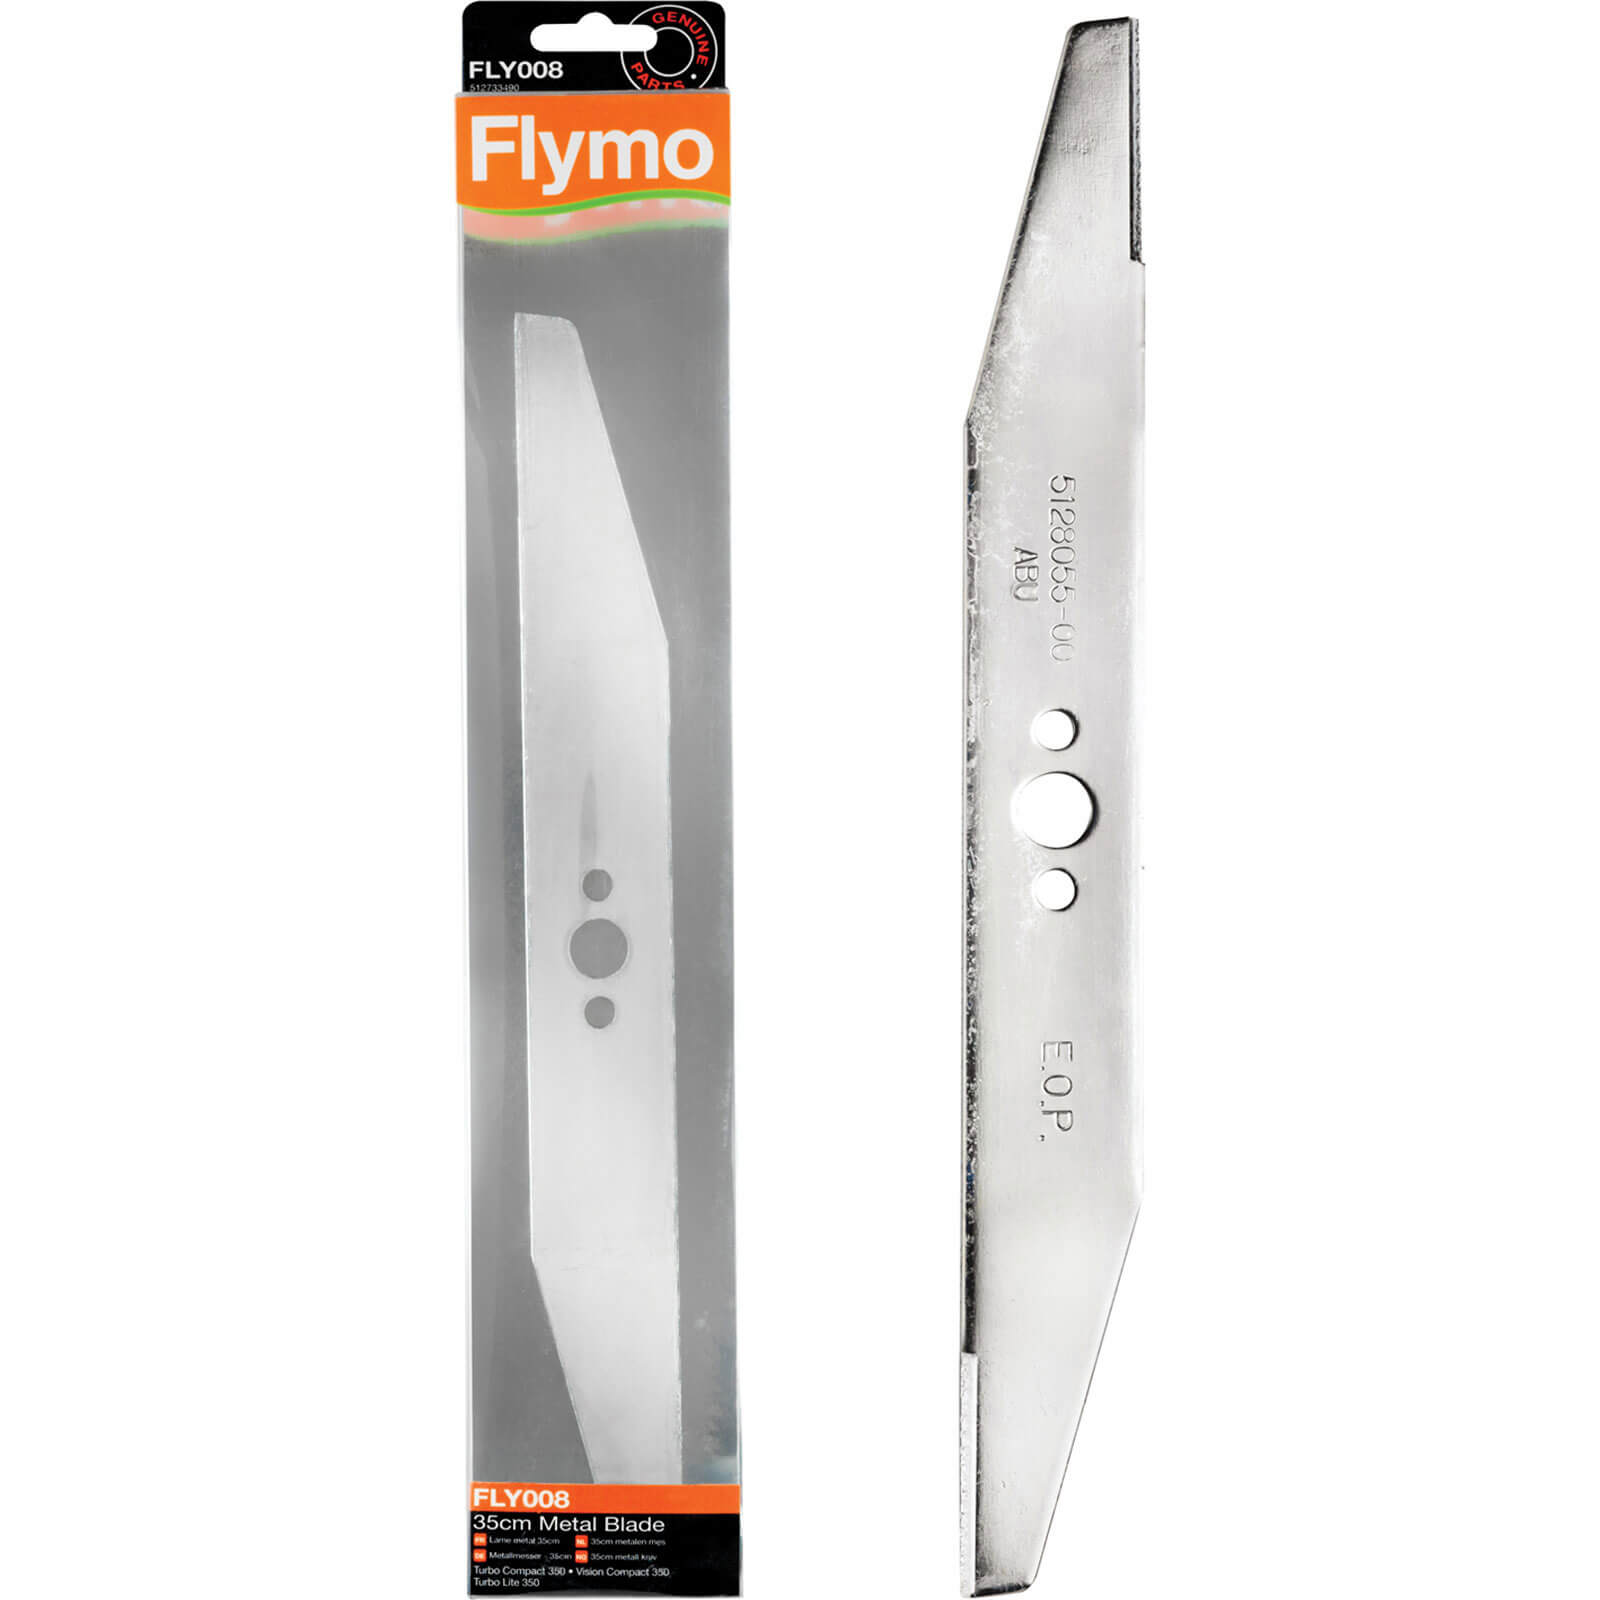 Flymo FLY008 Genuine Blade for TC350 TCV350 TL350 & VC350PLUS Lawnmowers 350mm Pack of 1